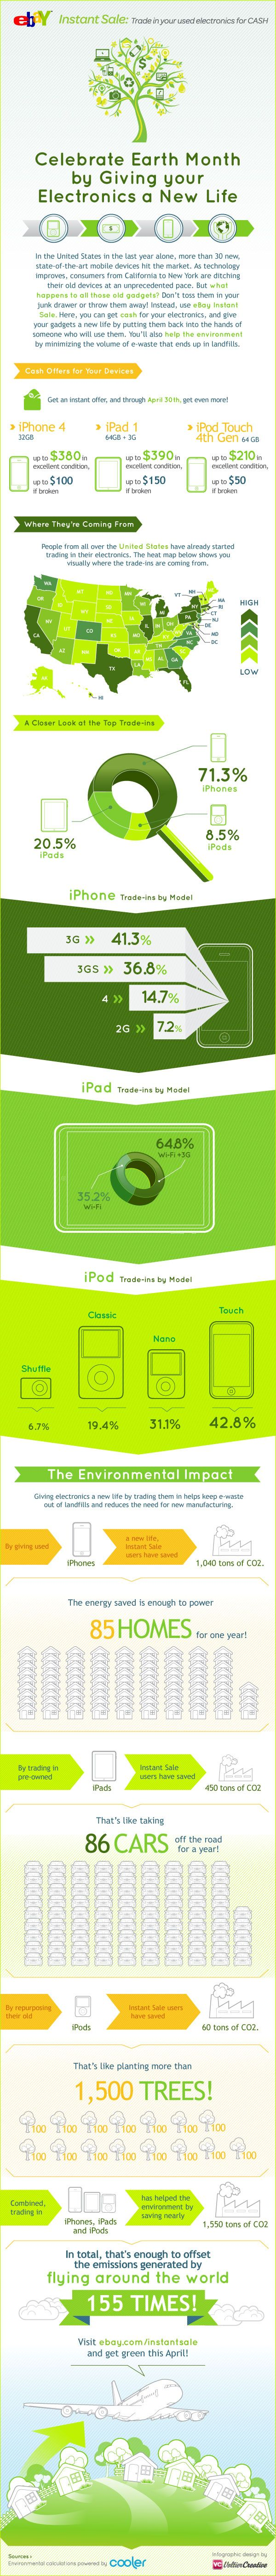 How the iPhone & Trade-ins Help the Environment | Voltier Creative